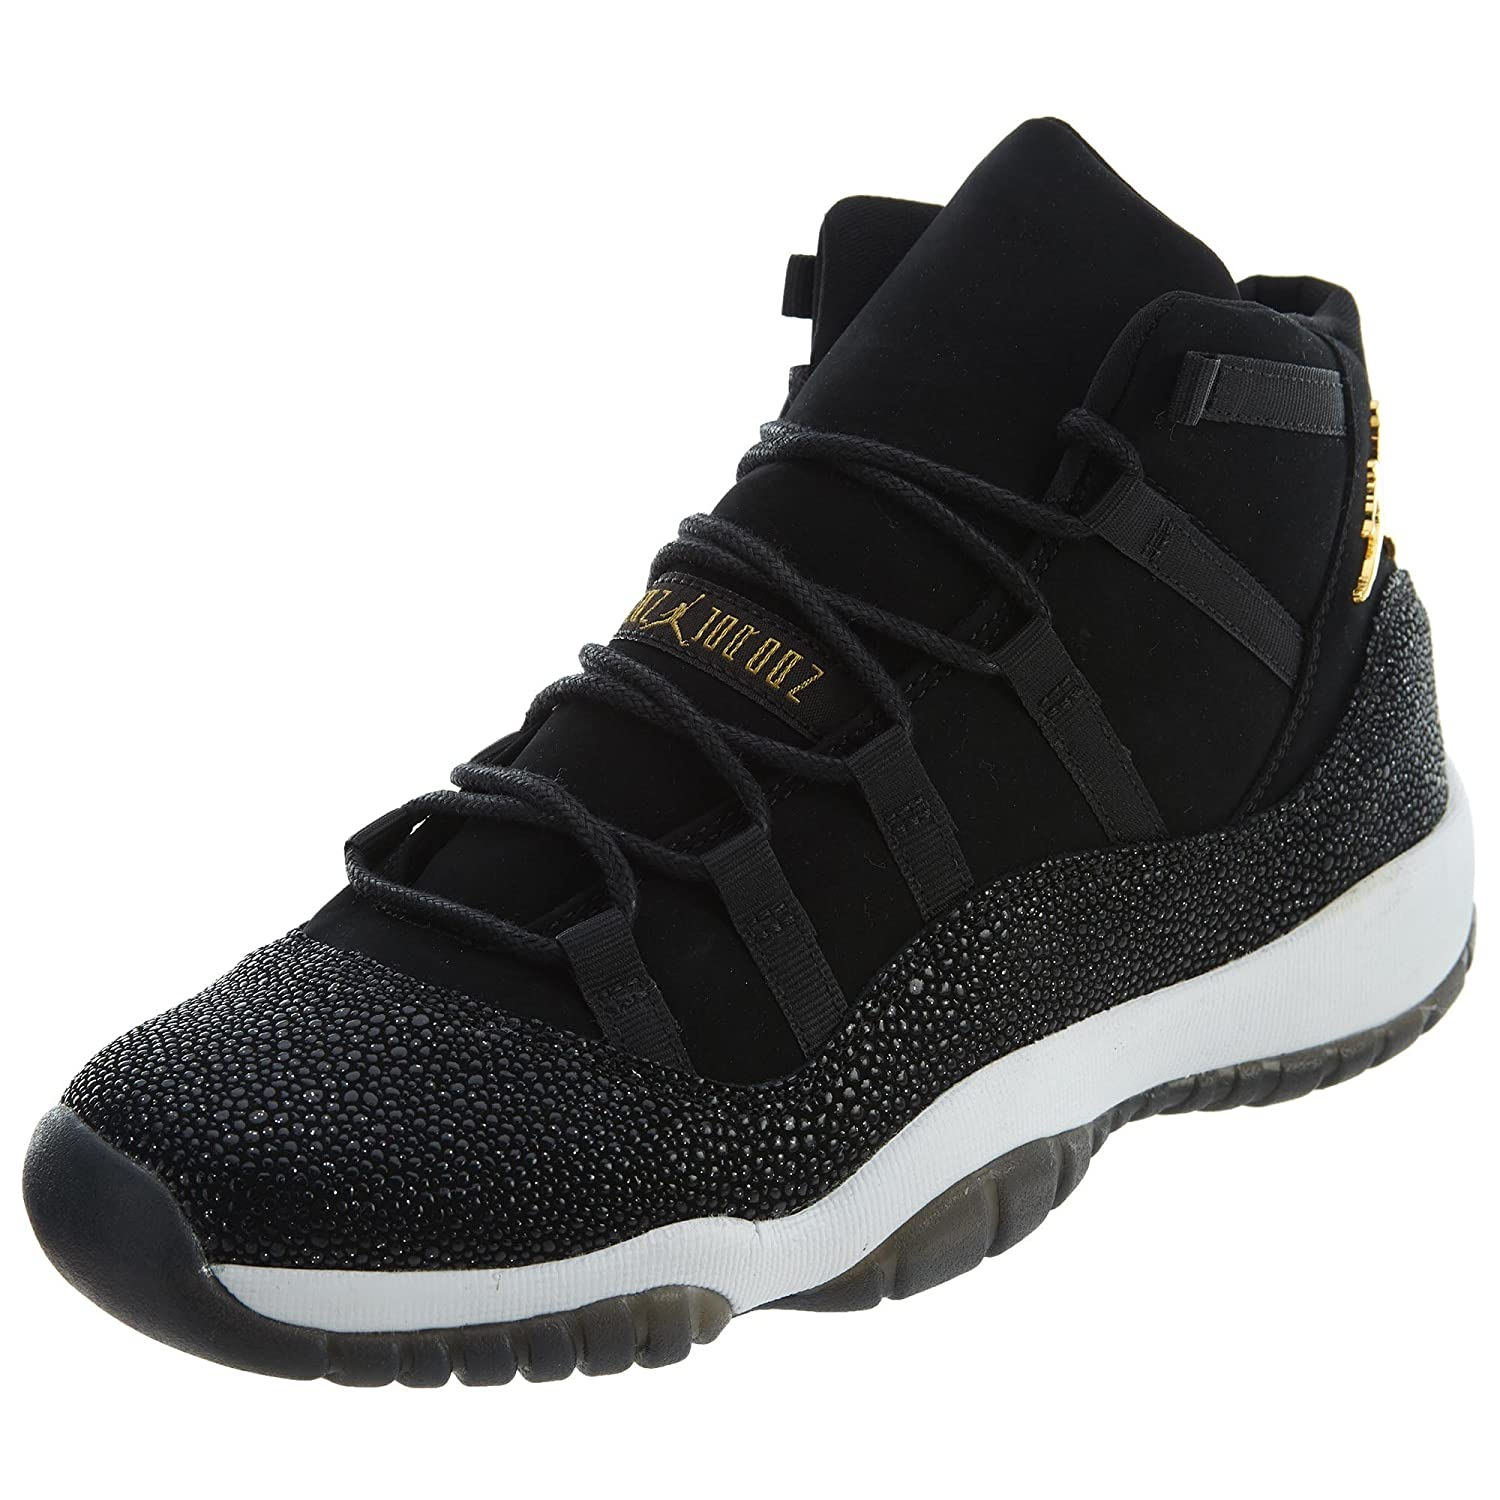 best website cdda2 059fa Amazon.com | Air Jordan 11 Retro Prem HC GG